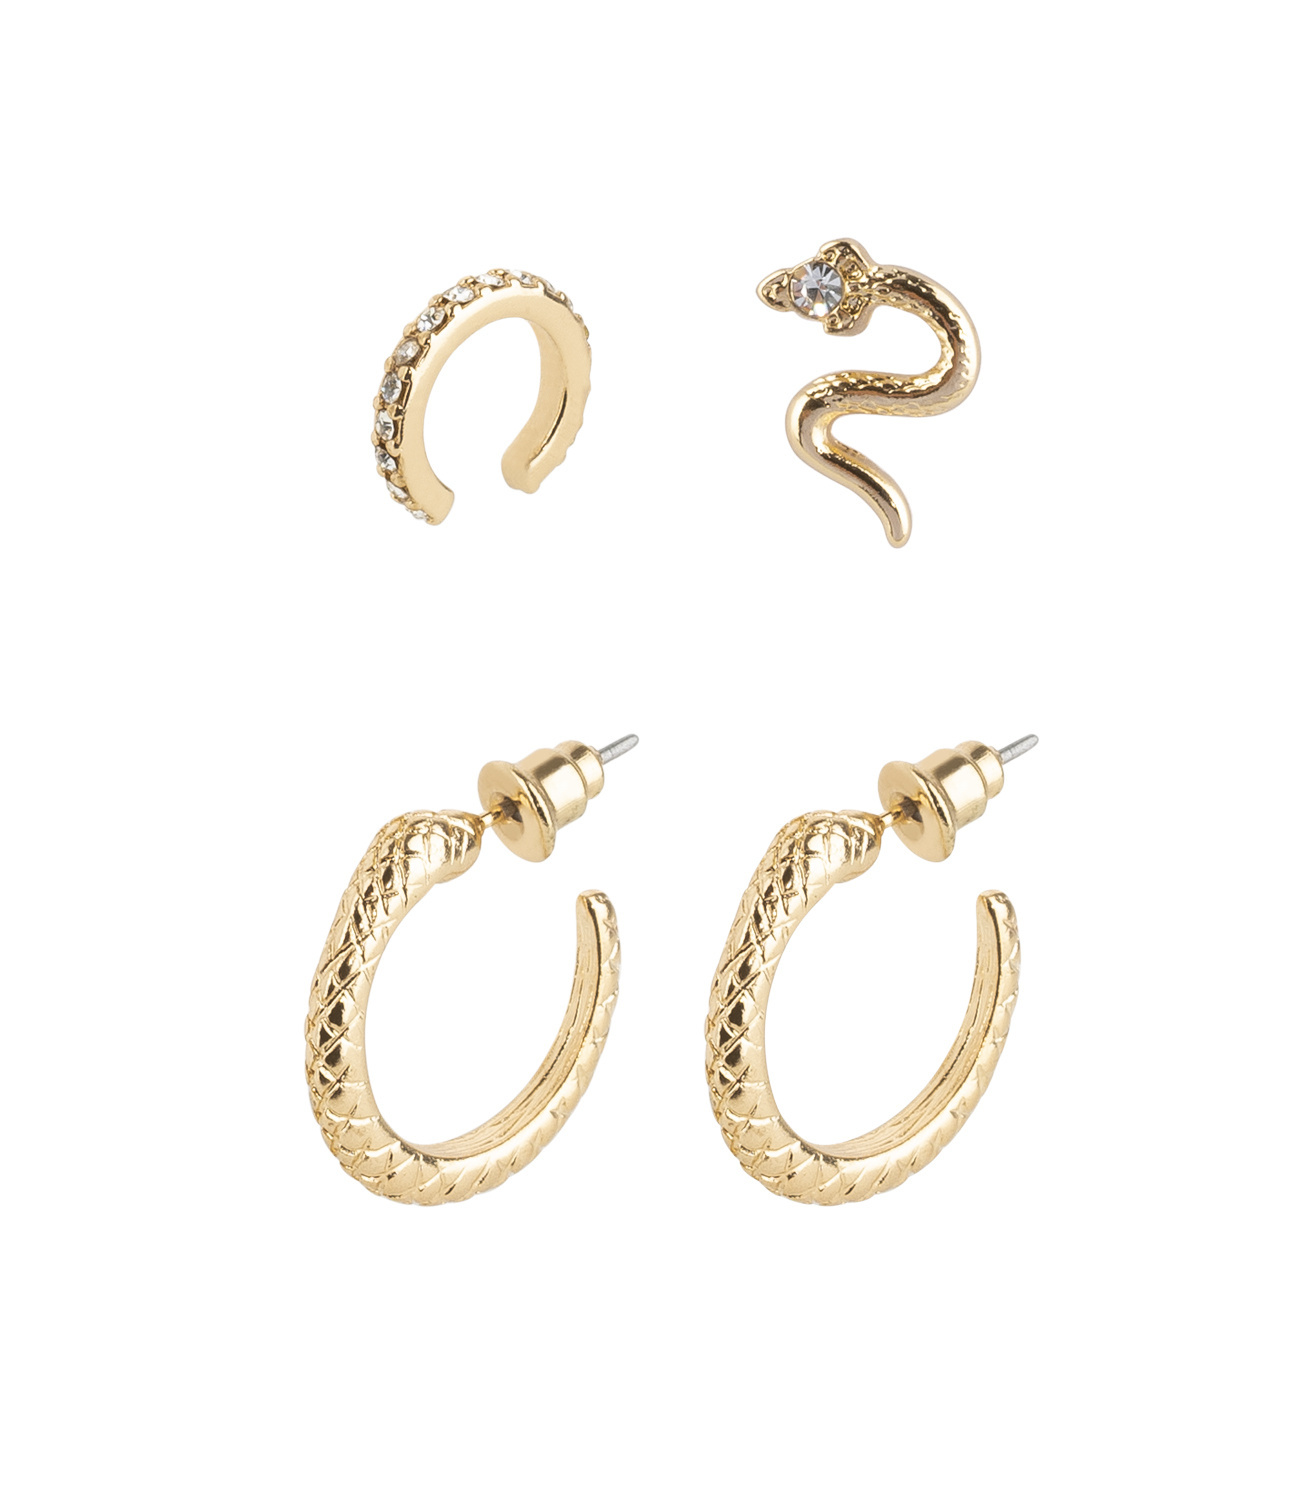 4er Stacking-Set im Reptilienlook mit Earcuff